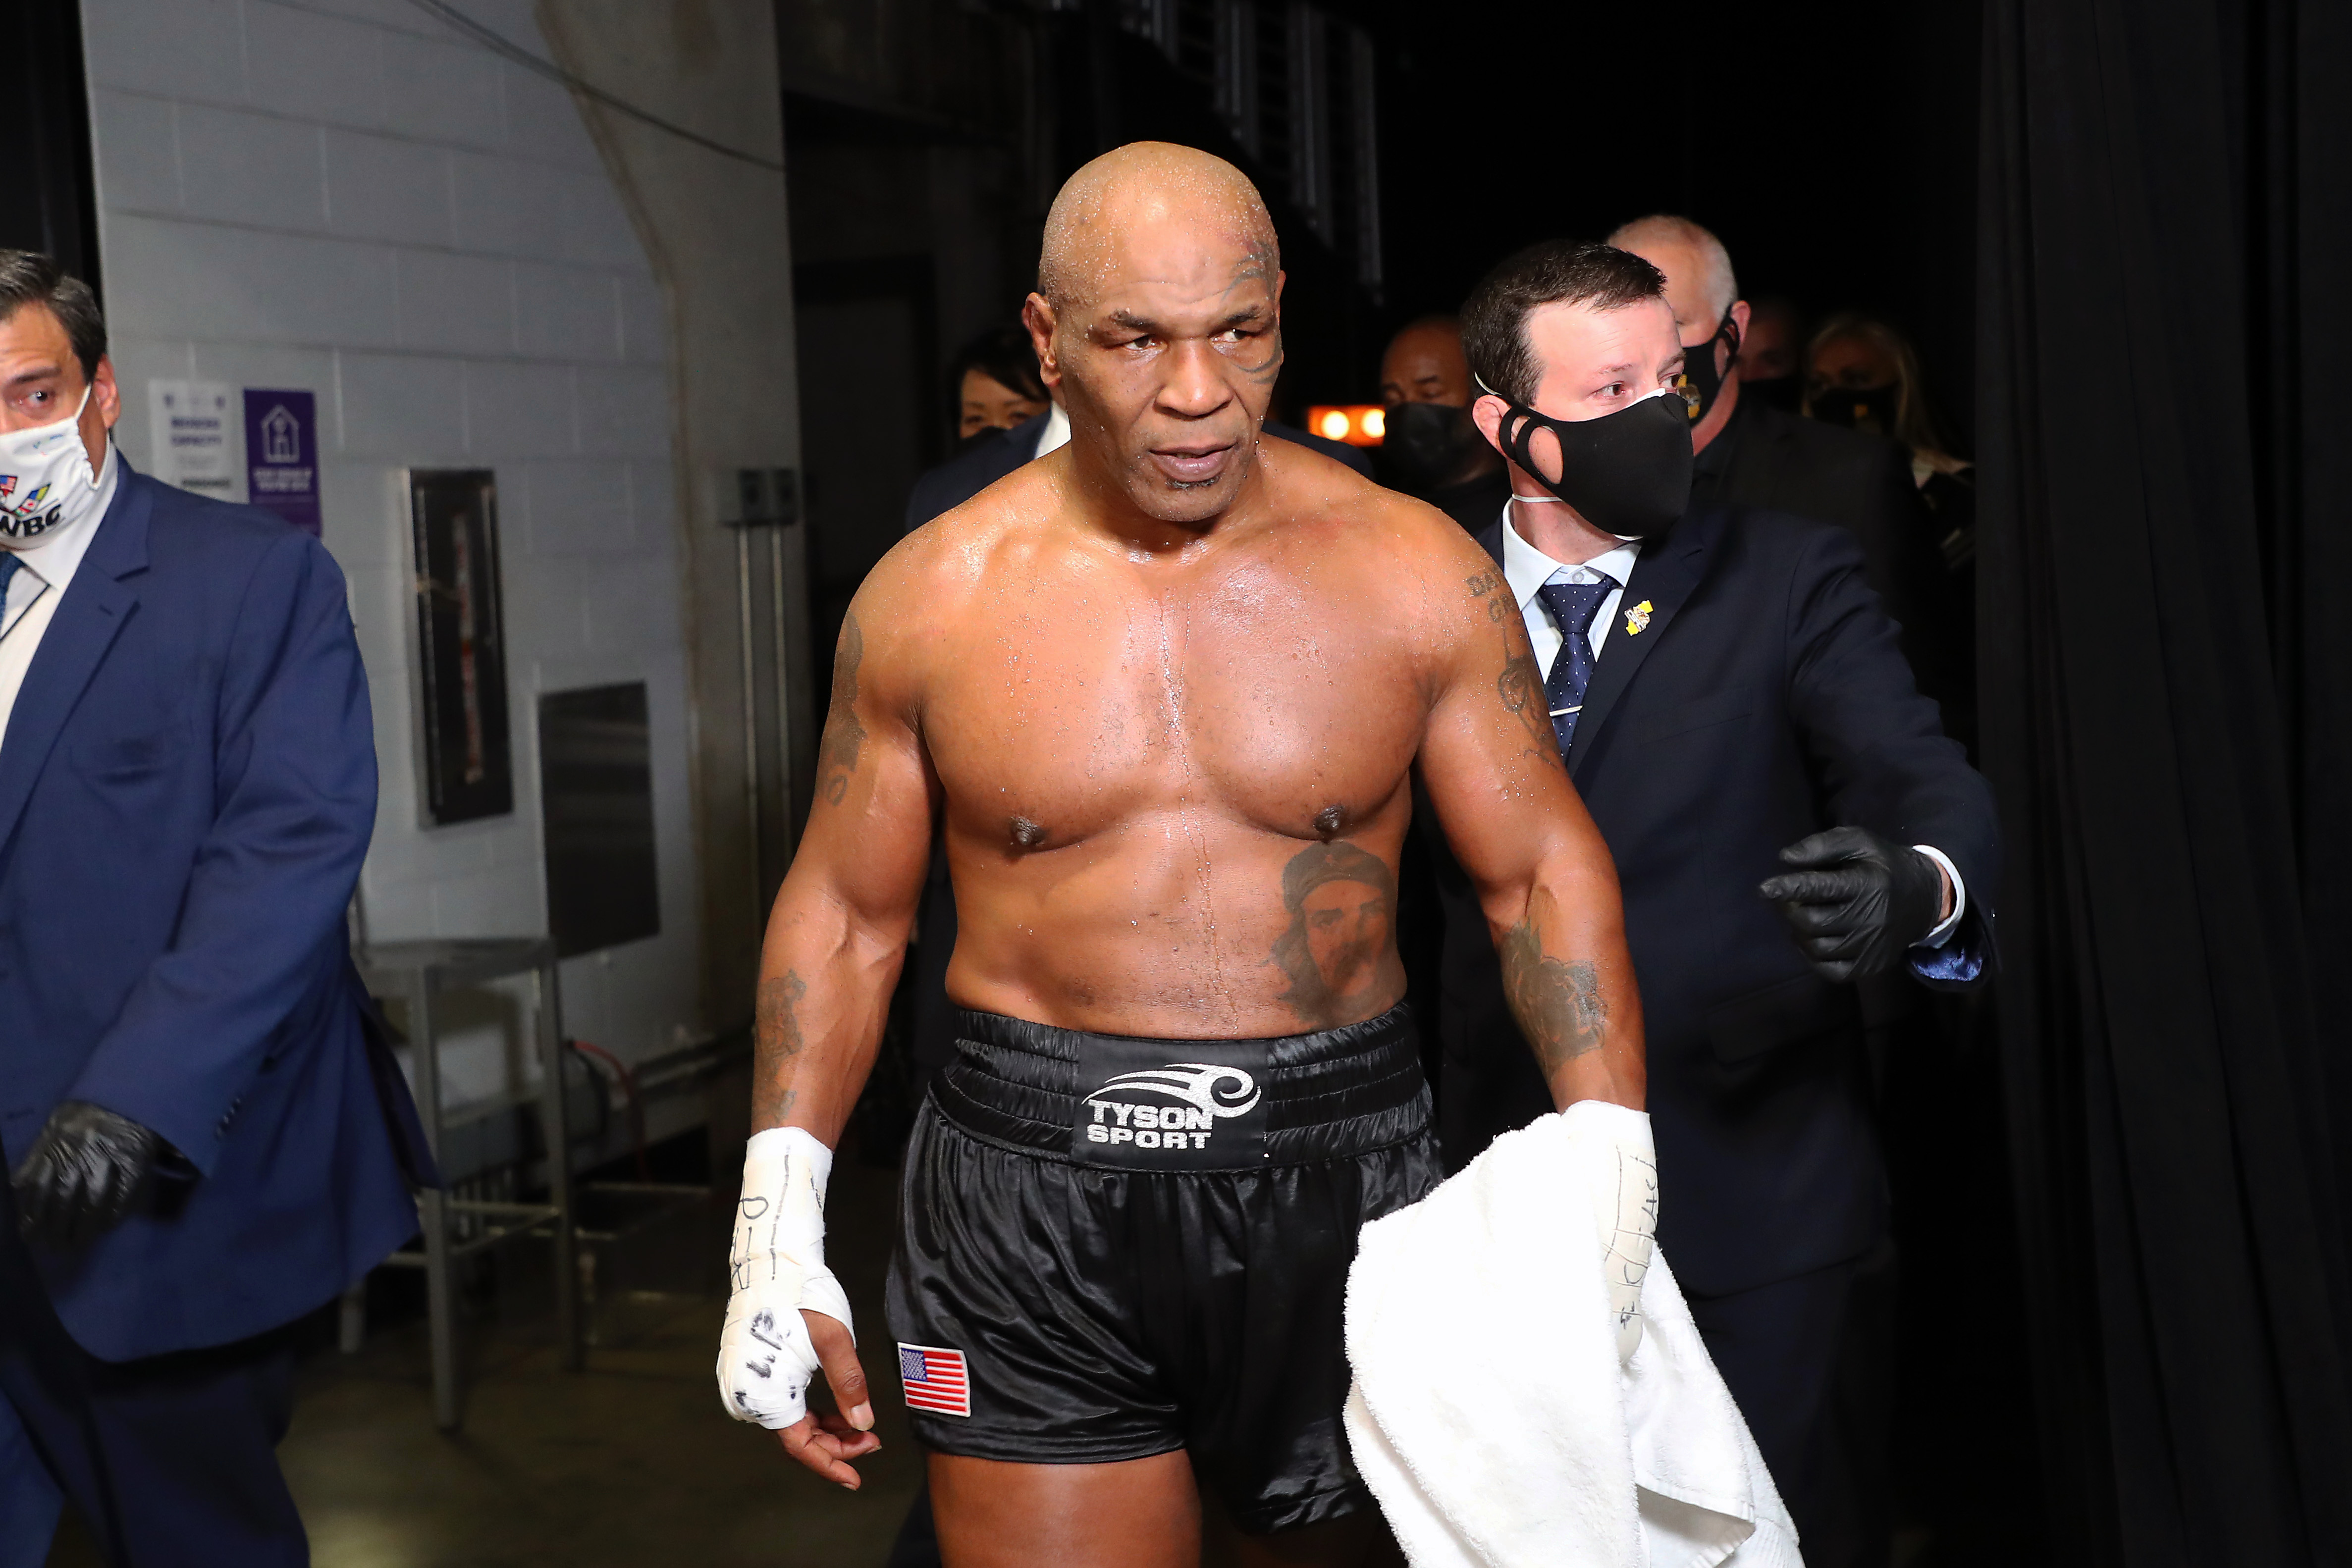 Tyson came back and fought an exhibition with Jones Jr – which ended in an unofficial draw